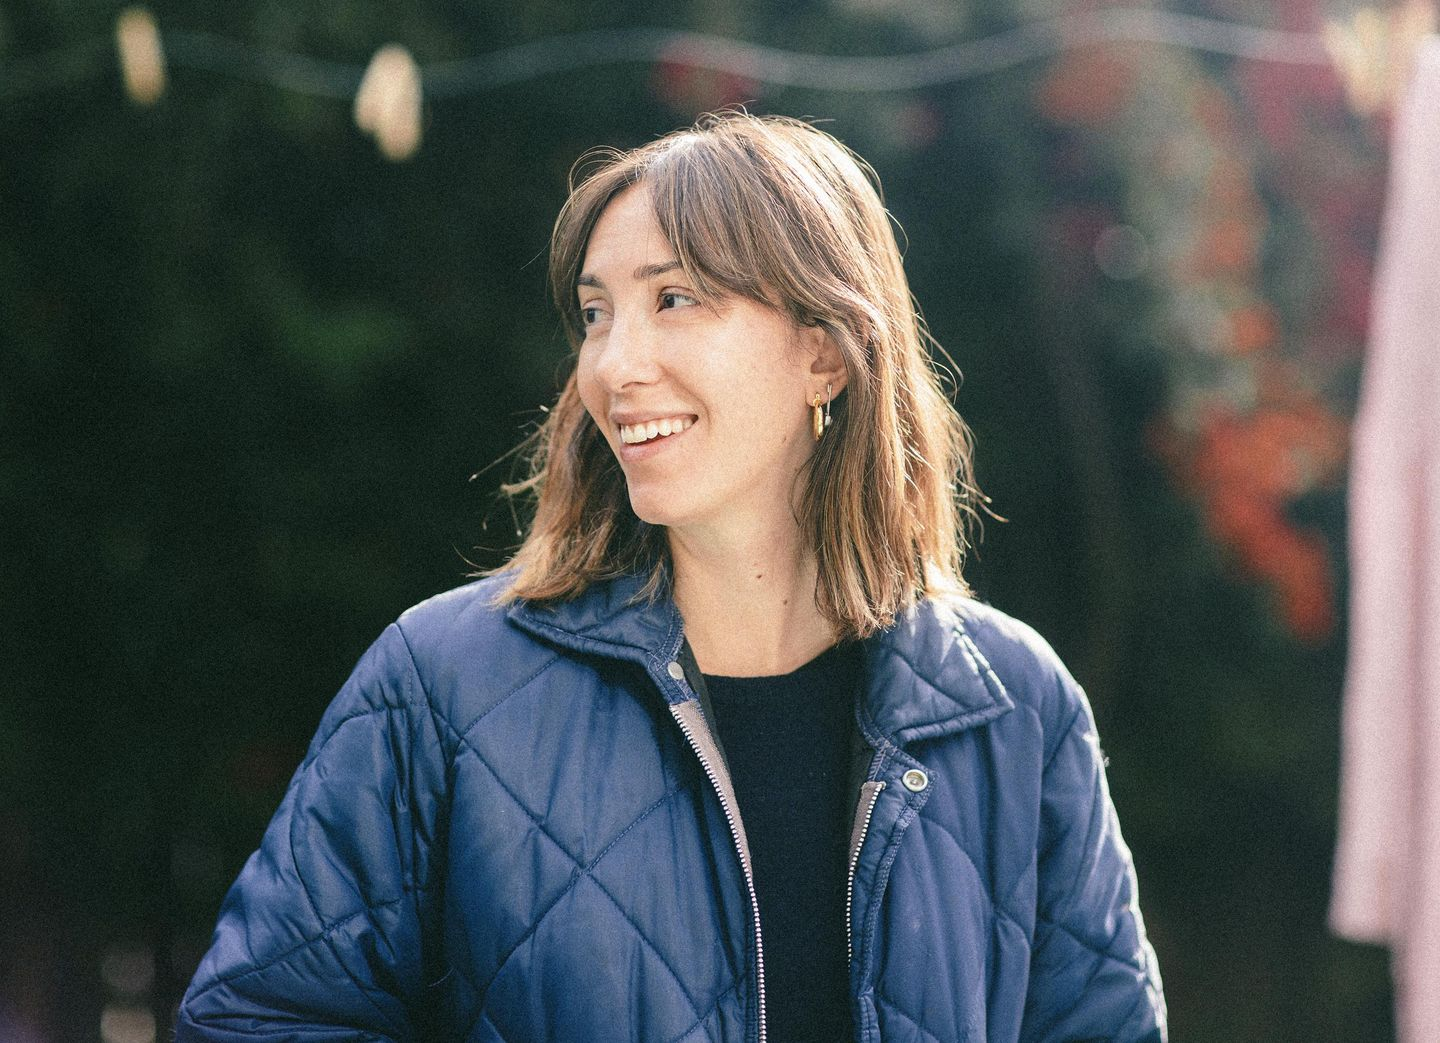 In a new film, Gia Coppola dissects 'Mainstream' culture